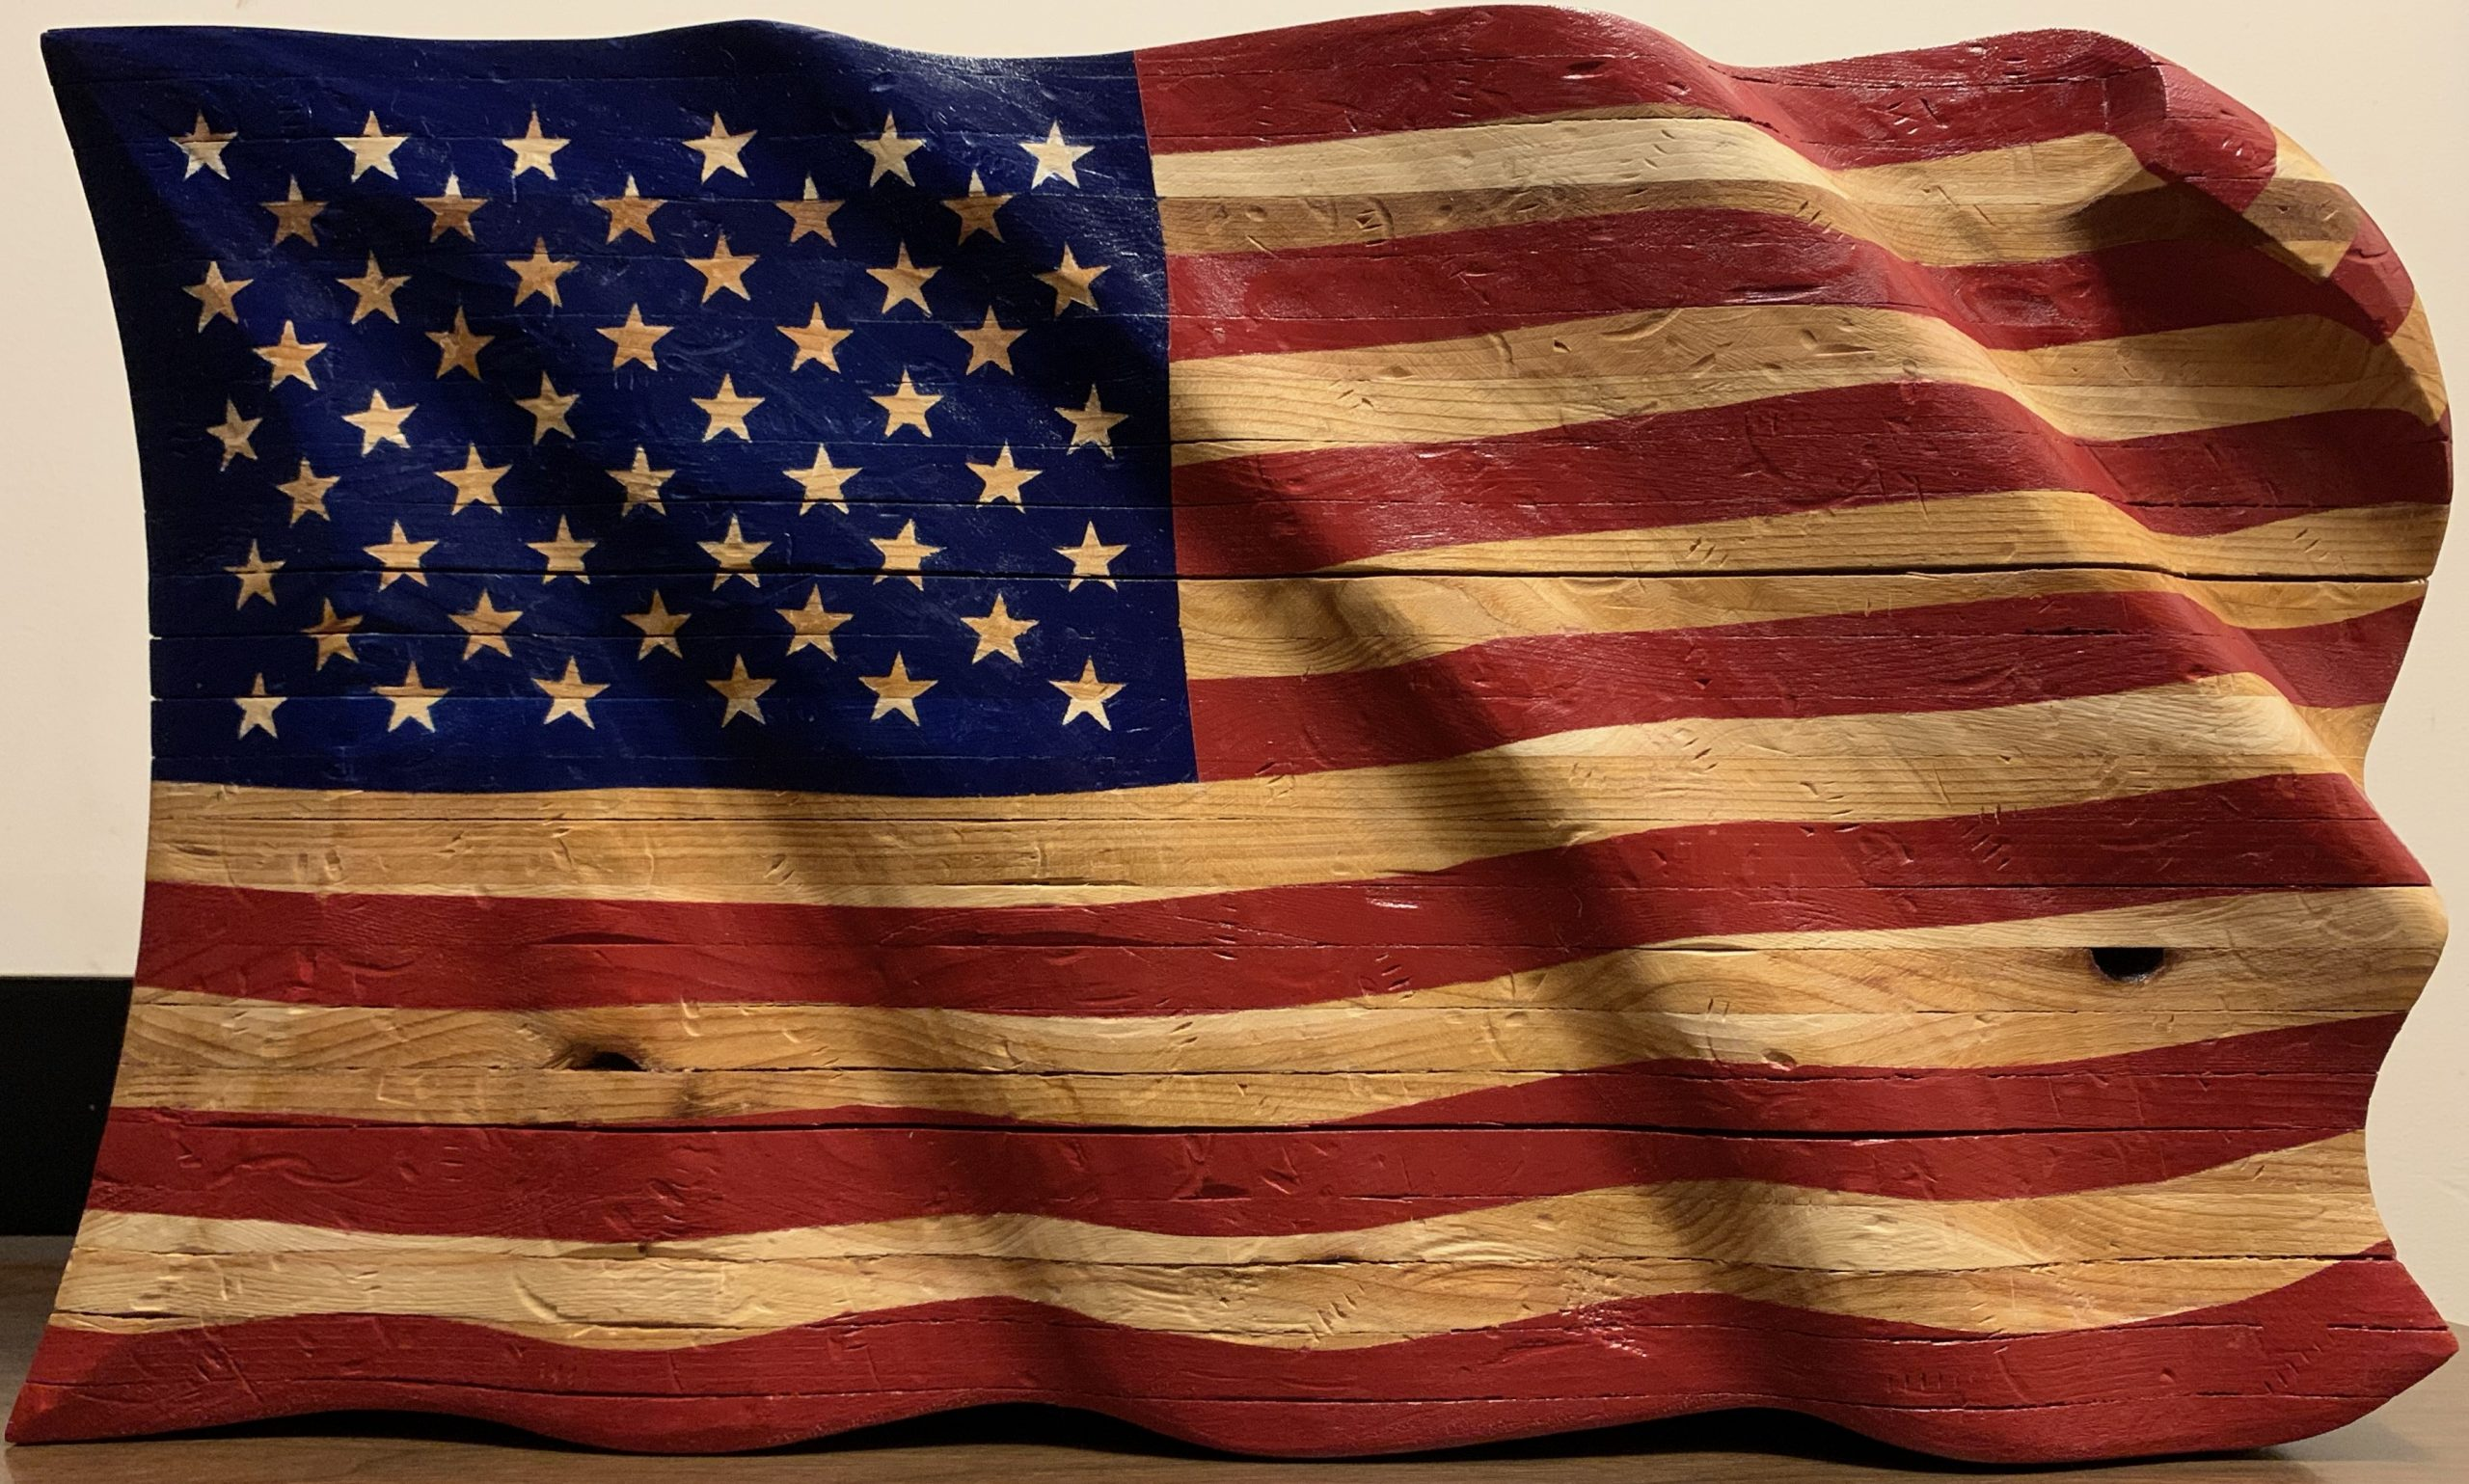 The American Flag: Why We Don't Let It Touch The Ground